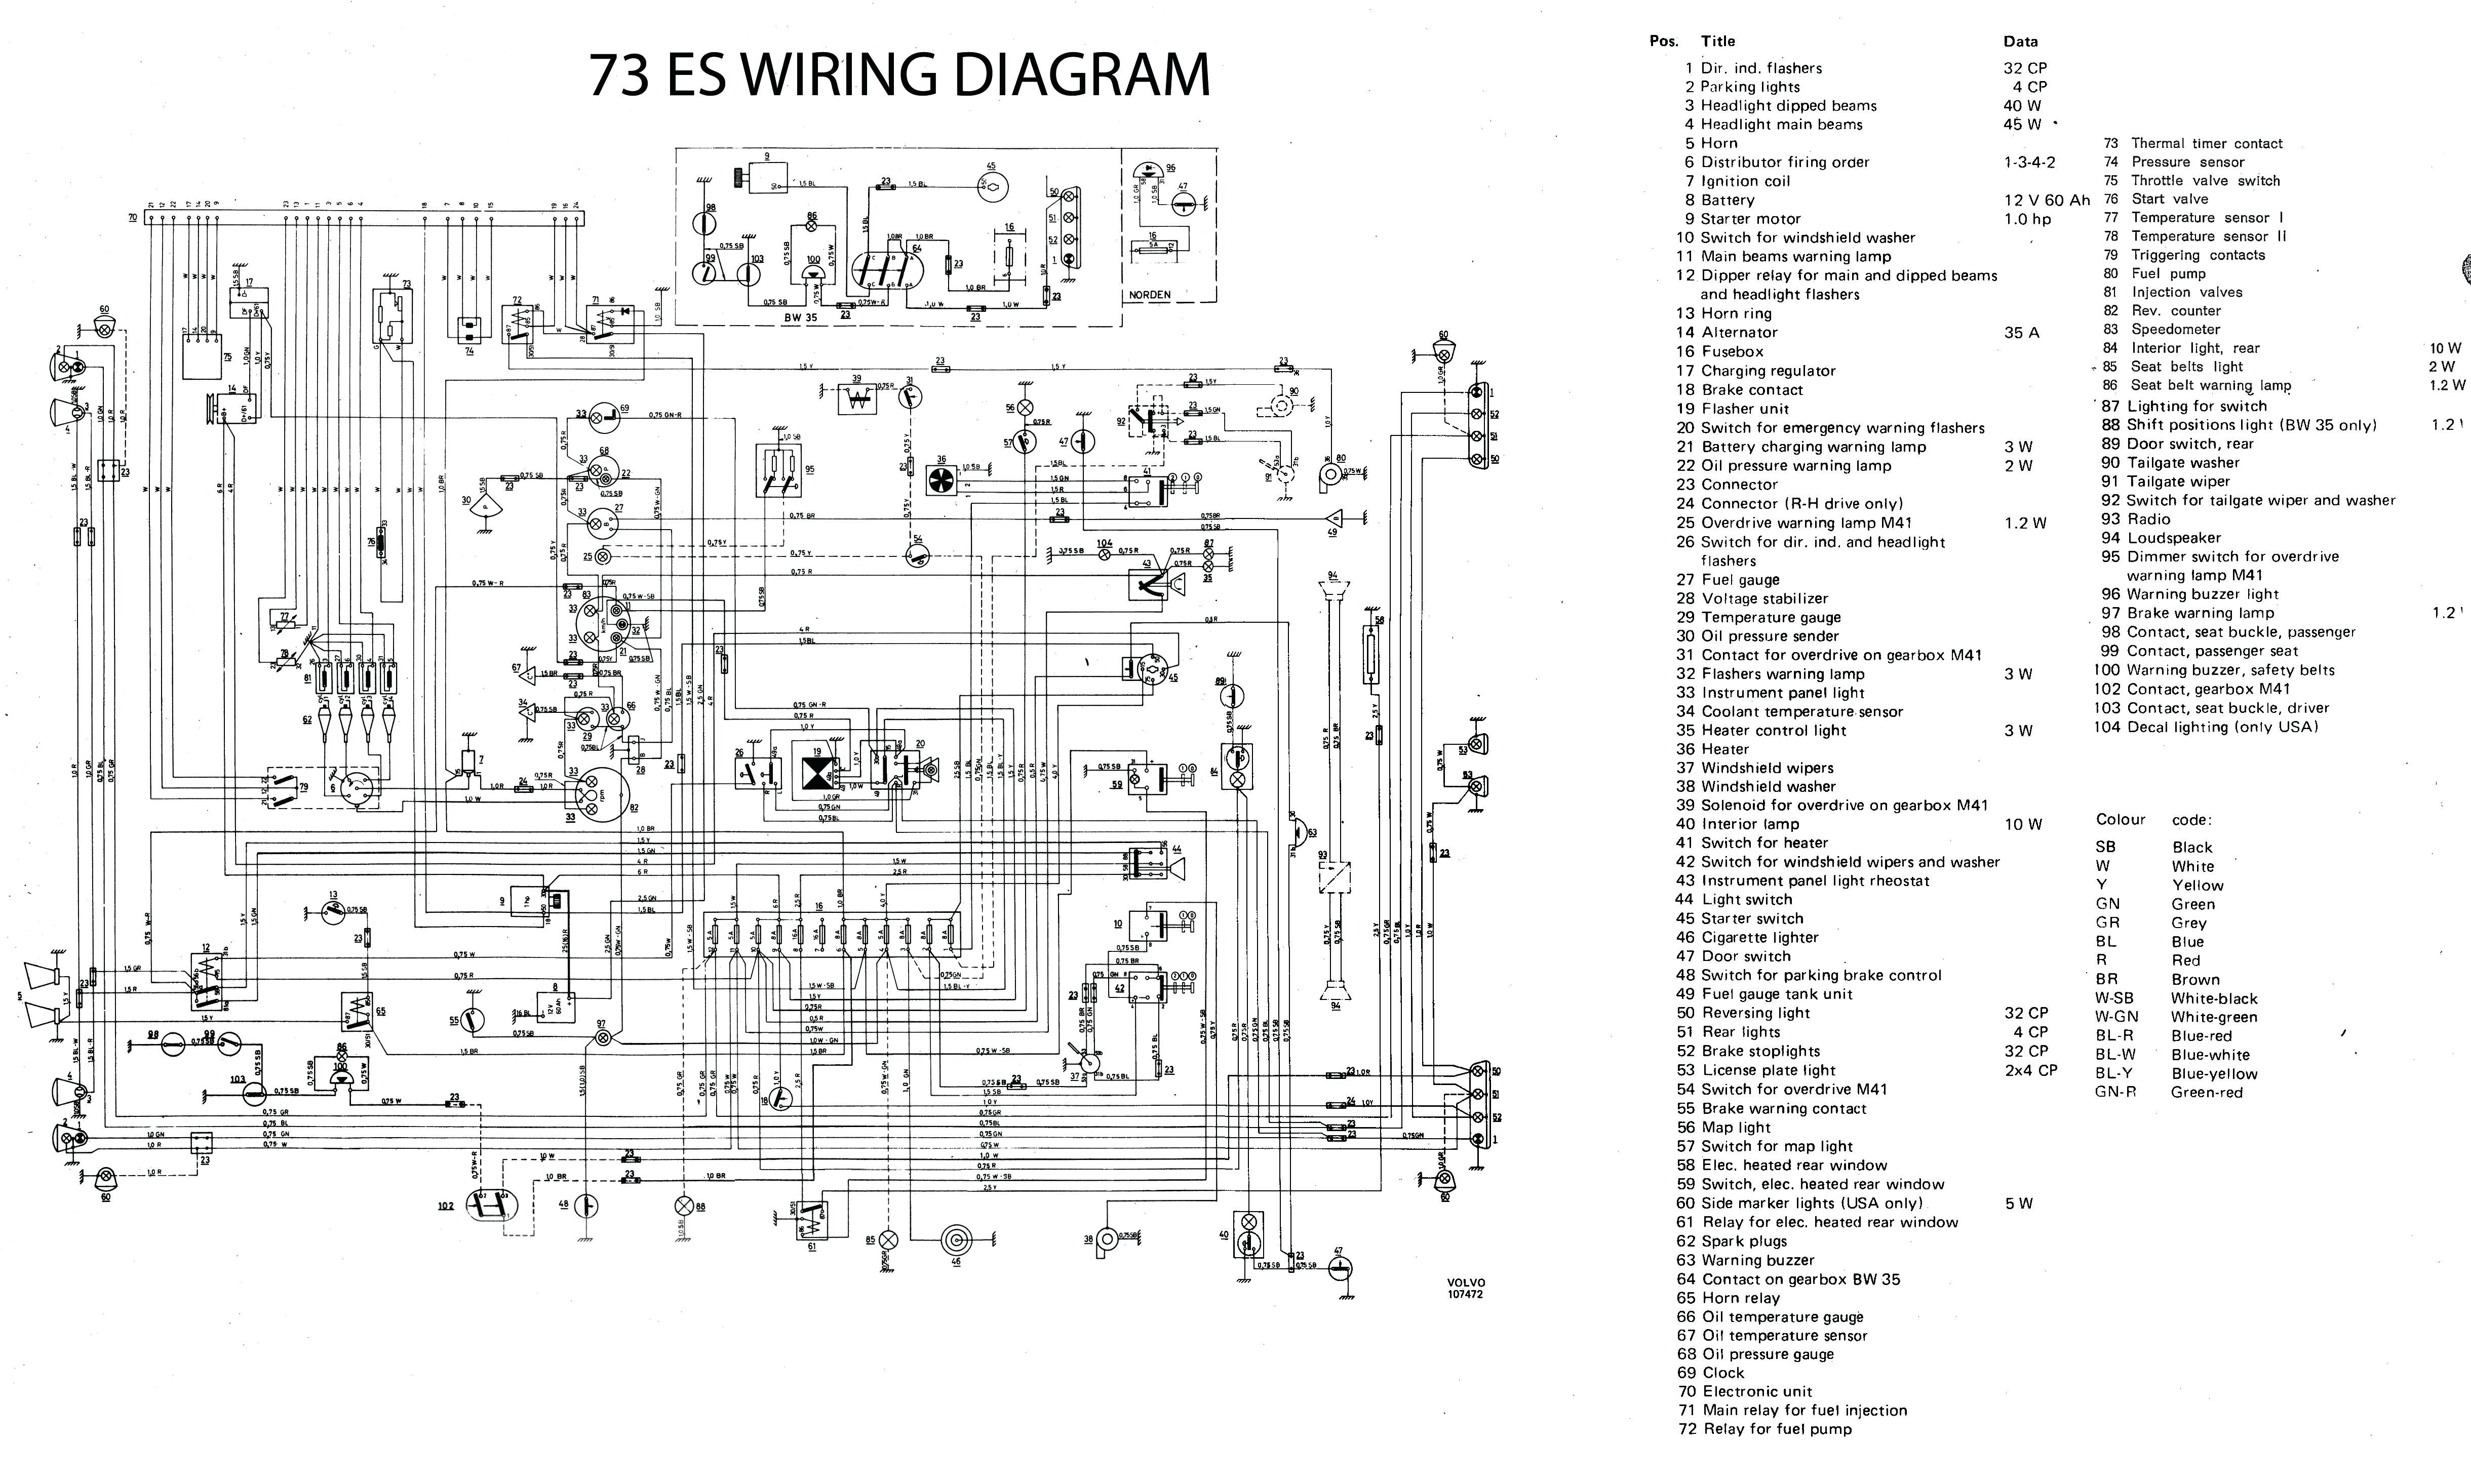 volvo s80 ignition wiring diagram trusted wiring diagram u2022 rh soulmatestyle co 2003 Volvo XC90 Cooling Diagrams wiring diagram volvo s80 2007